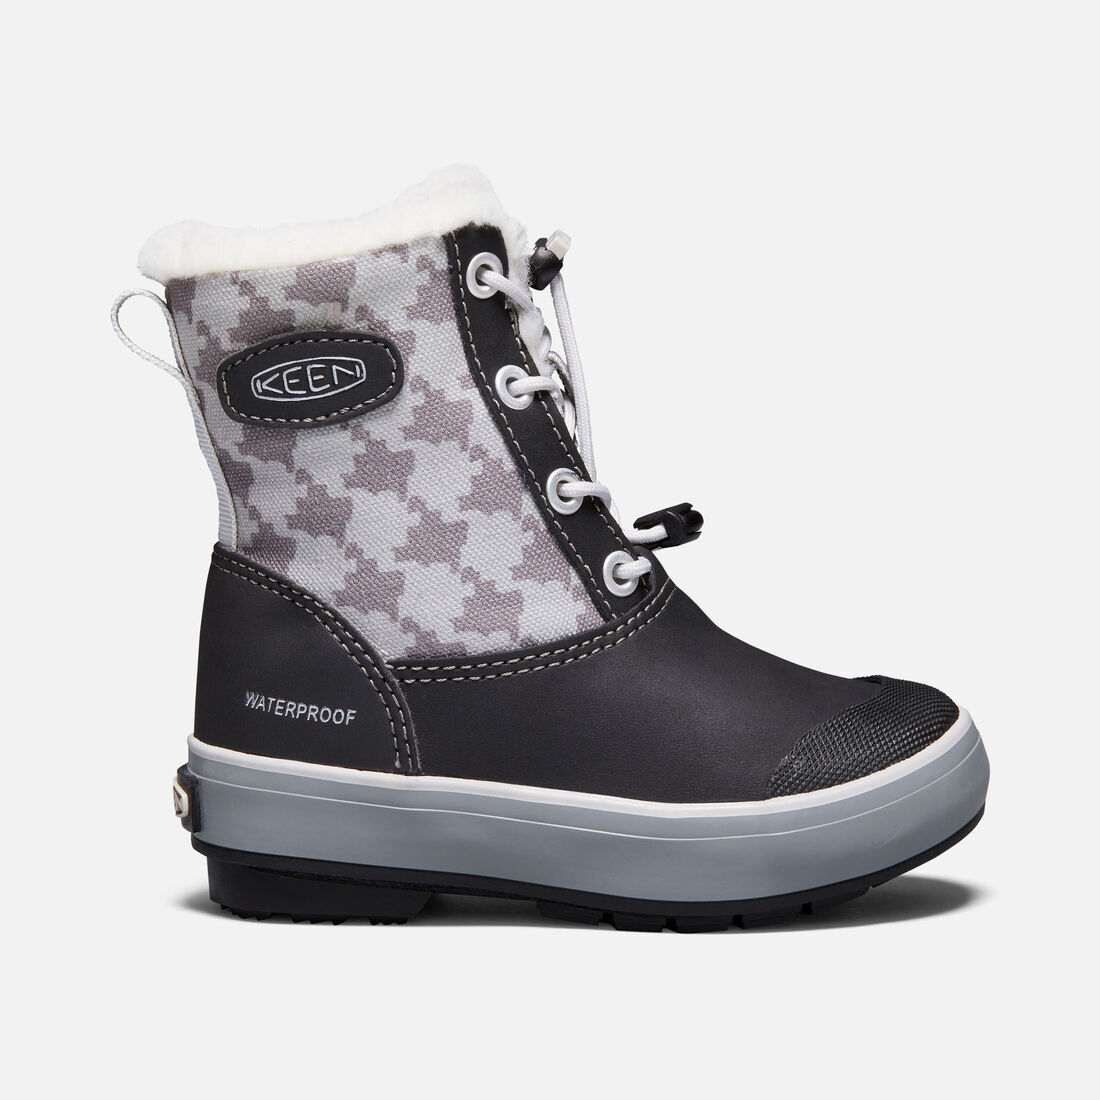 Little Kids' Elsa Boot in Black/Houndstooth - large view.